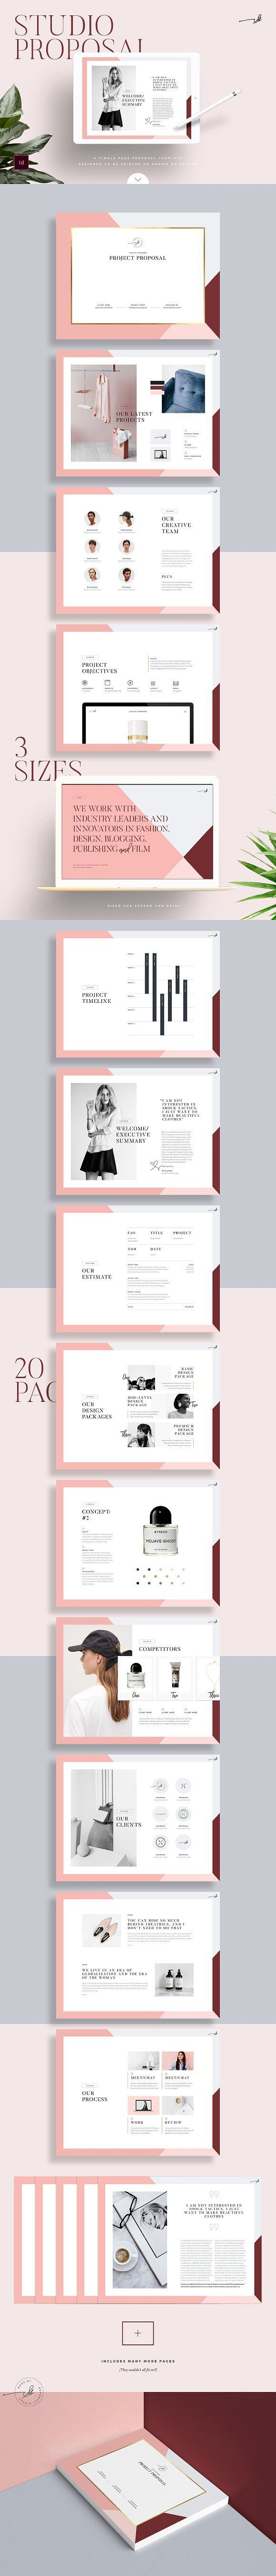 Studio Proposal by Studio Standard on @creativemarket Ready for Print Magazine and Brochure template creative design and great covers, perfect for modern and stylish corporate appearance for business companies. Modern, simple, clean, minimal and feminine layout inspiration to grab some ideas.